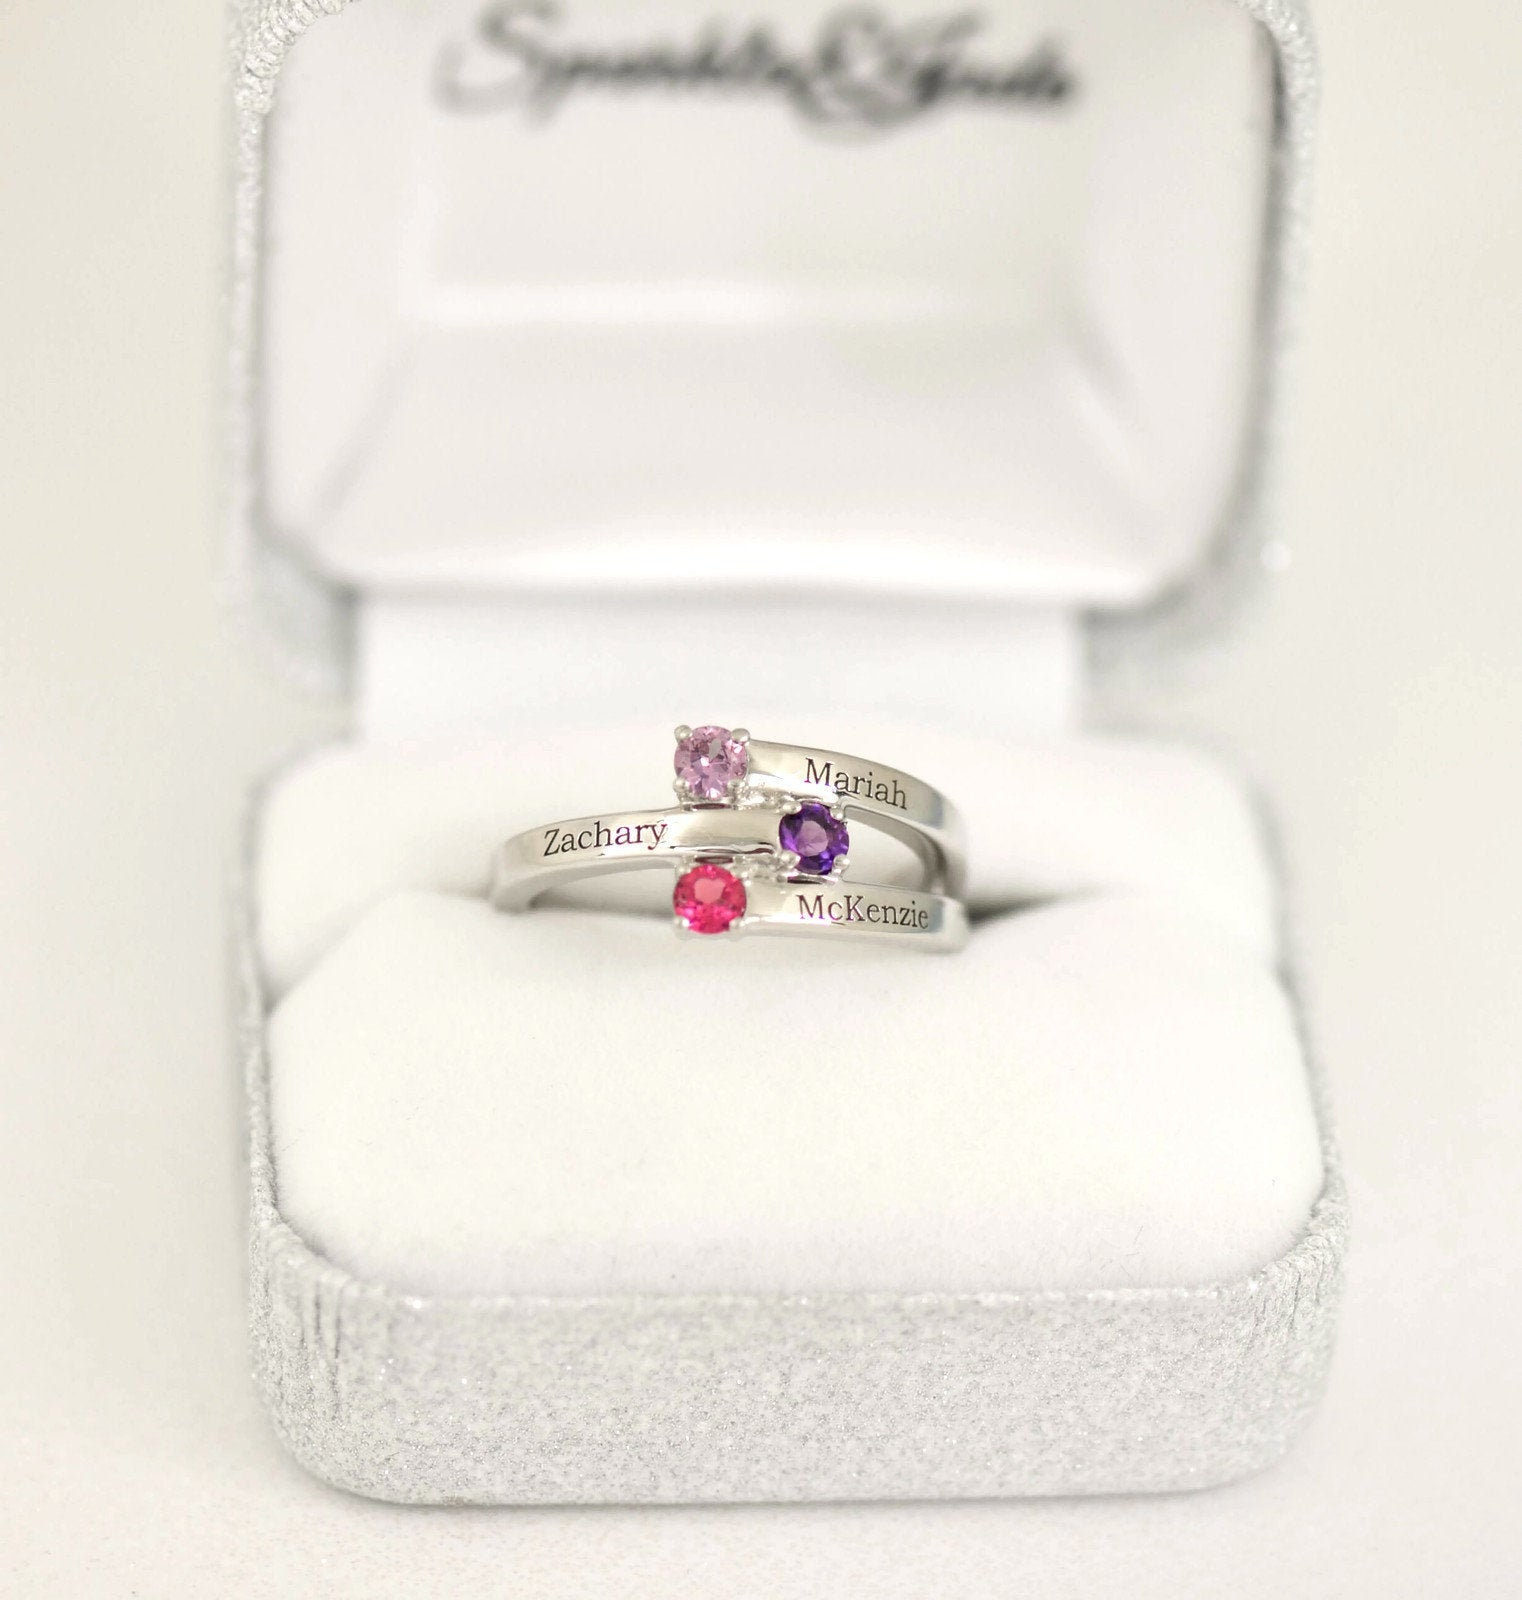 Sterling Silver /& 14k Two-stone and Diamond Mothers Ring Semi-Mount Size 7 Length Width 4